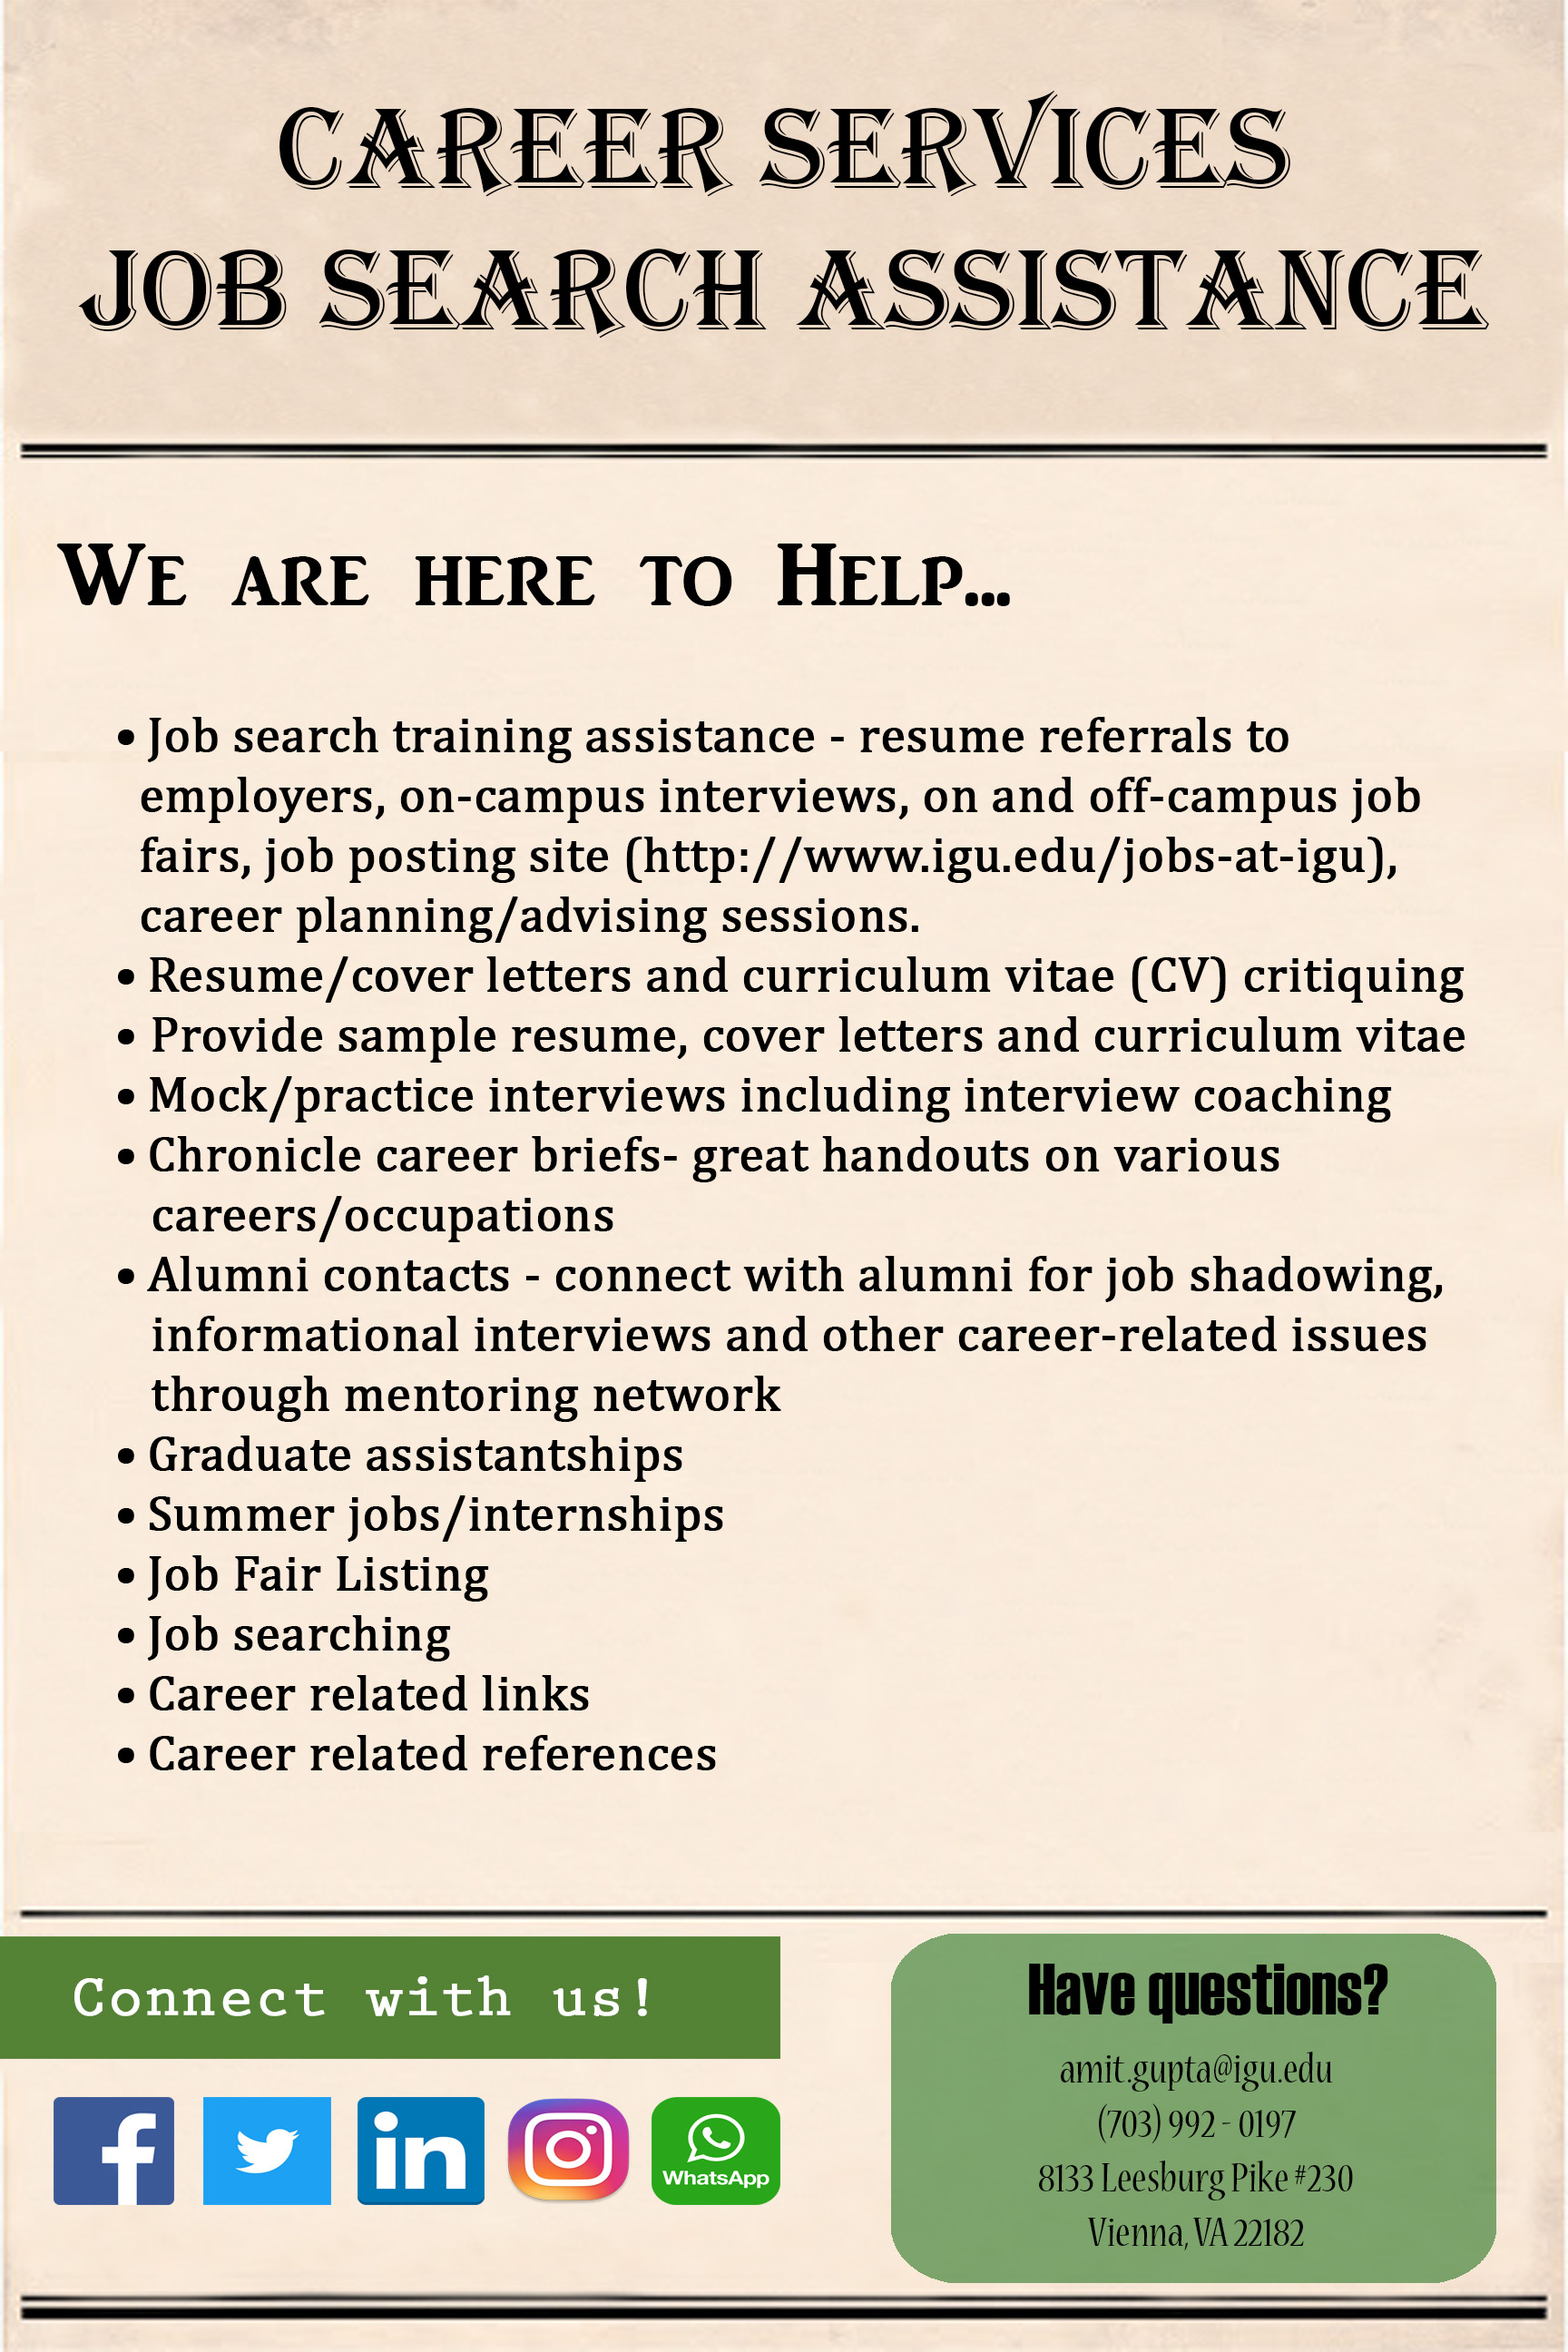 Career Services Job Search Assistance